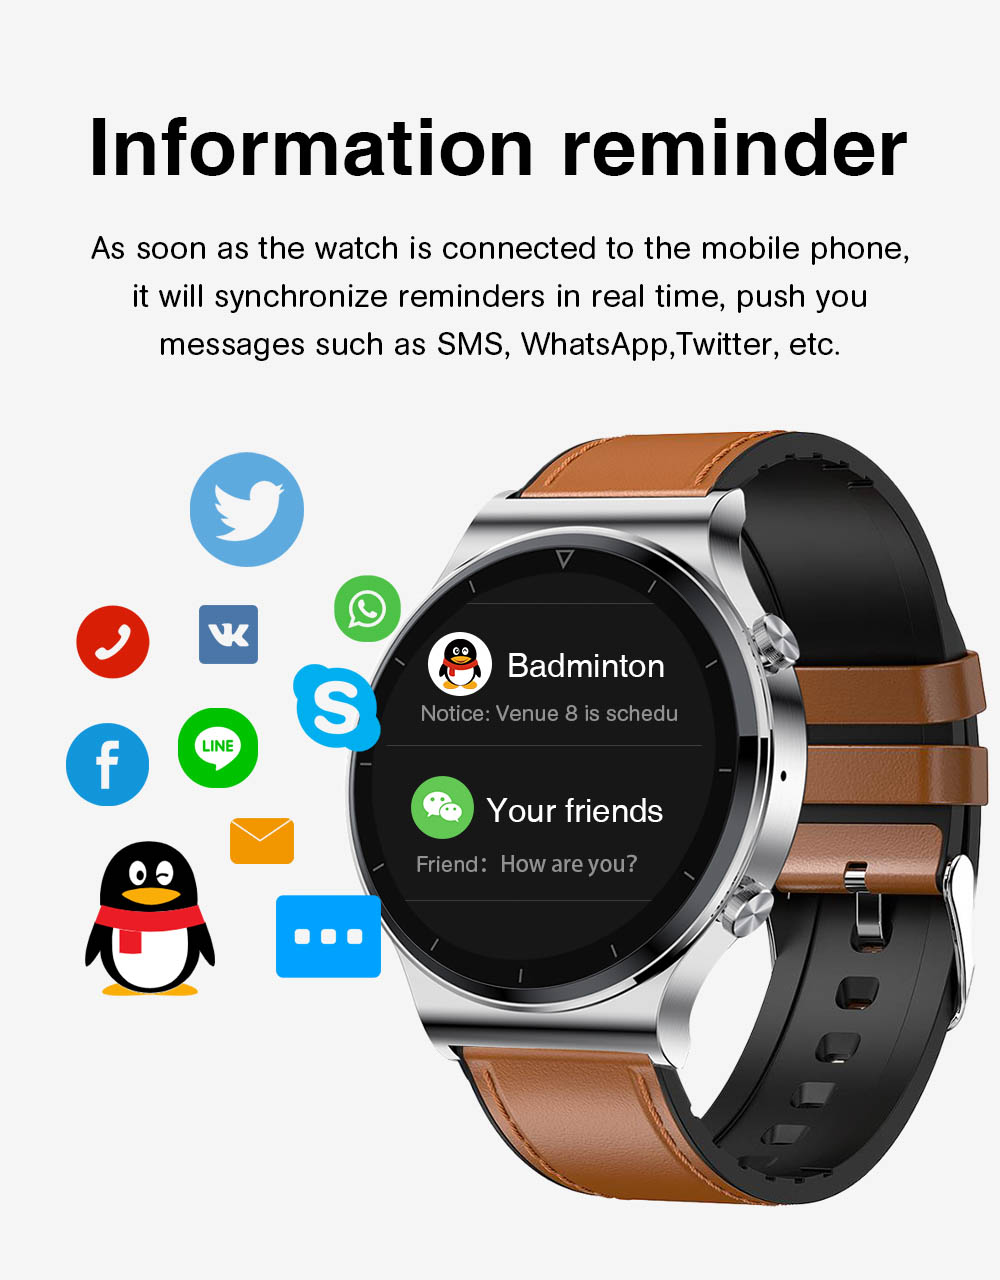 Hbf0978bfe4e44f3282b3e30194ed2868r NUOBO 2021 New Smart Watch Men Bluetooth Call Heart Rate Blood Pressure Sports IP68 Waterproof Smartwatch for Android IOS Phone